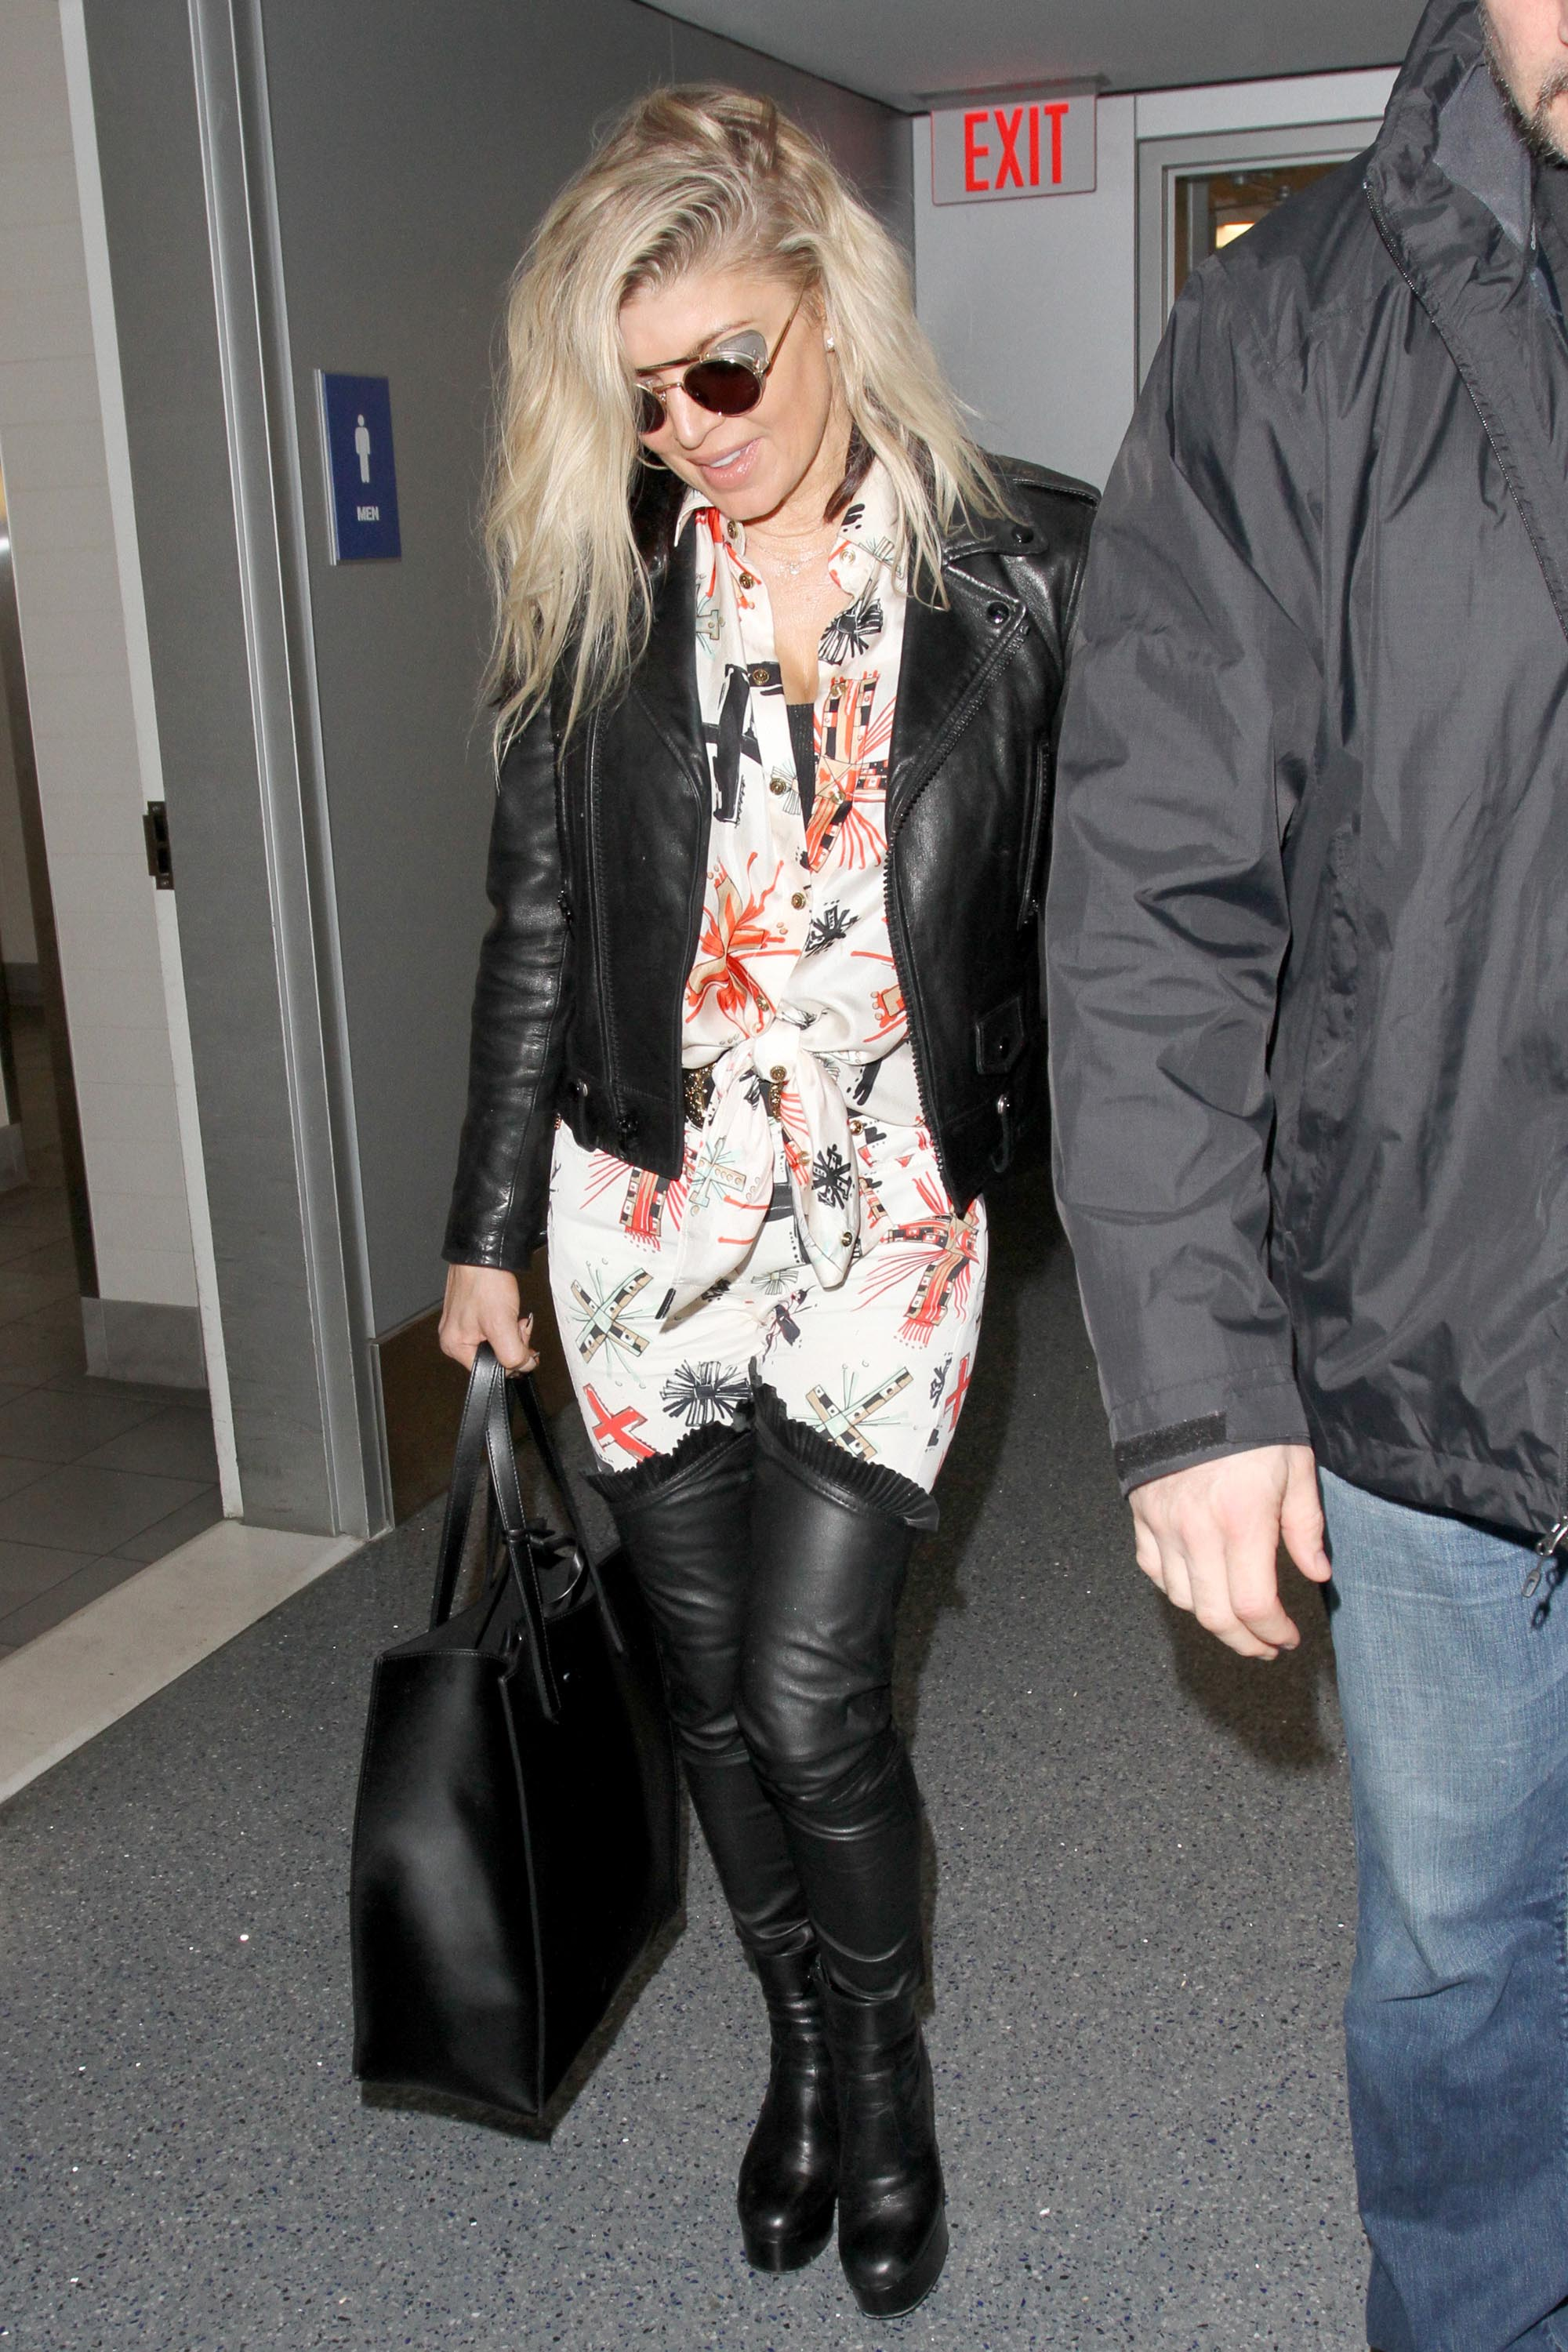 Fergie seen at LAX